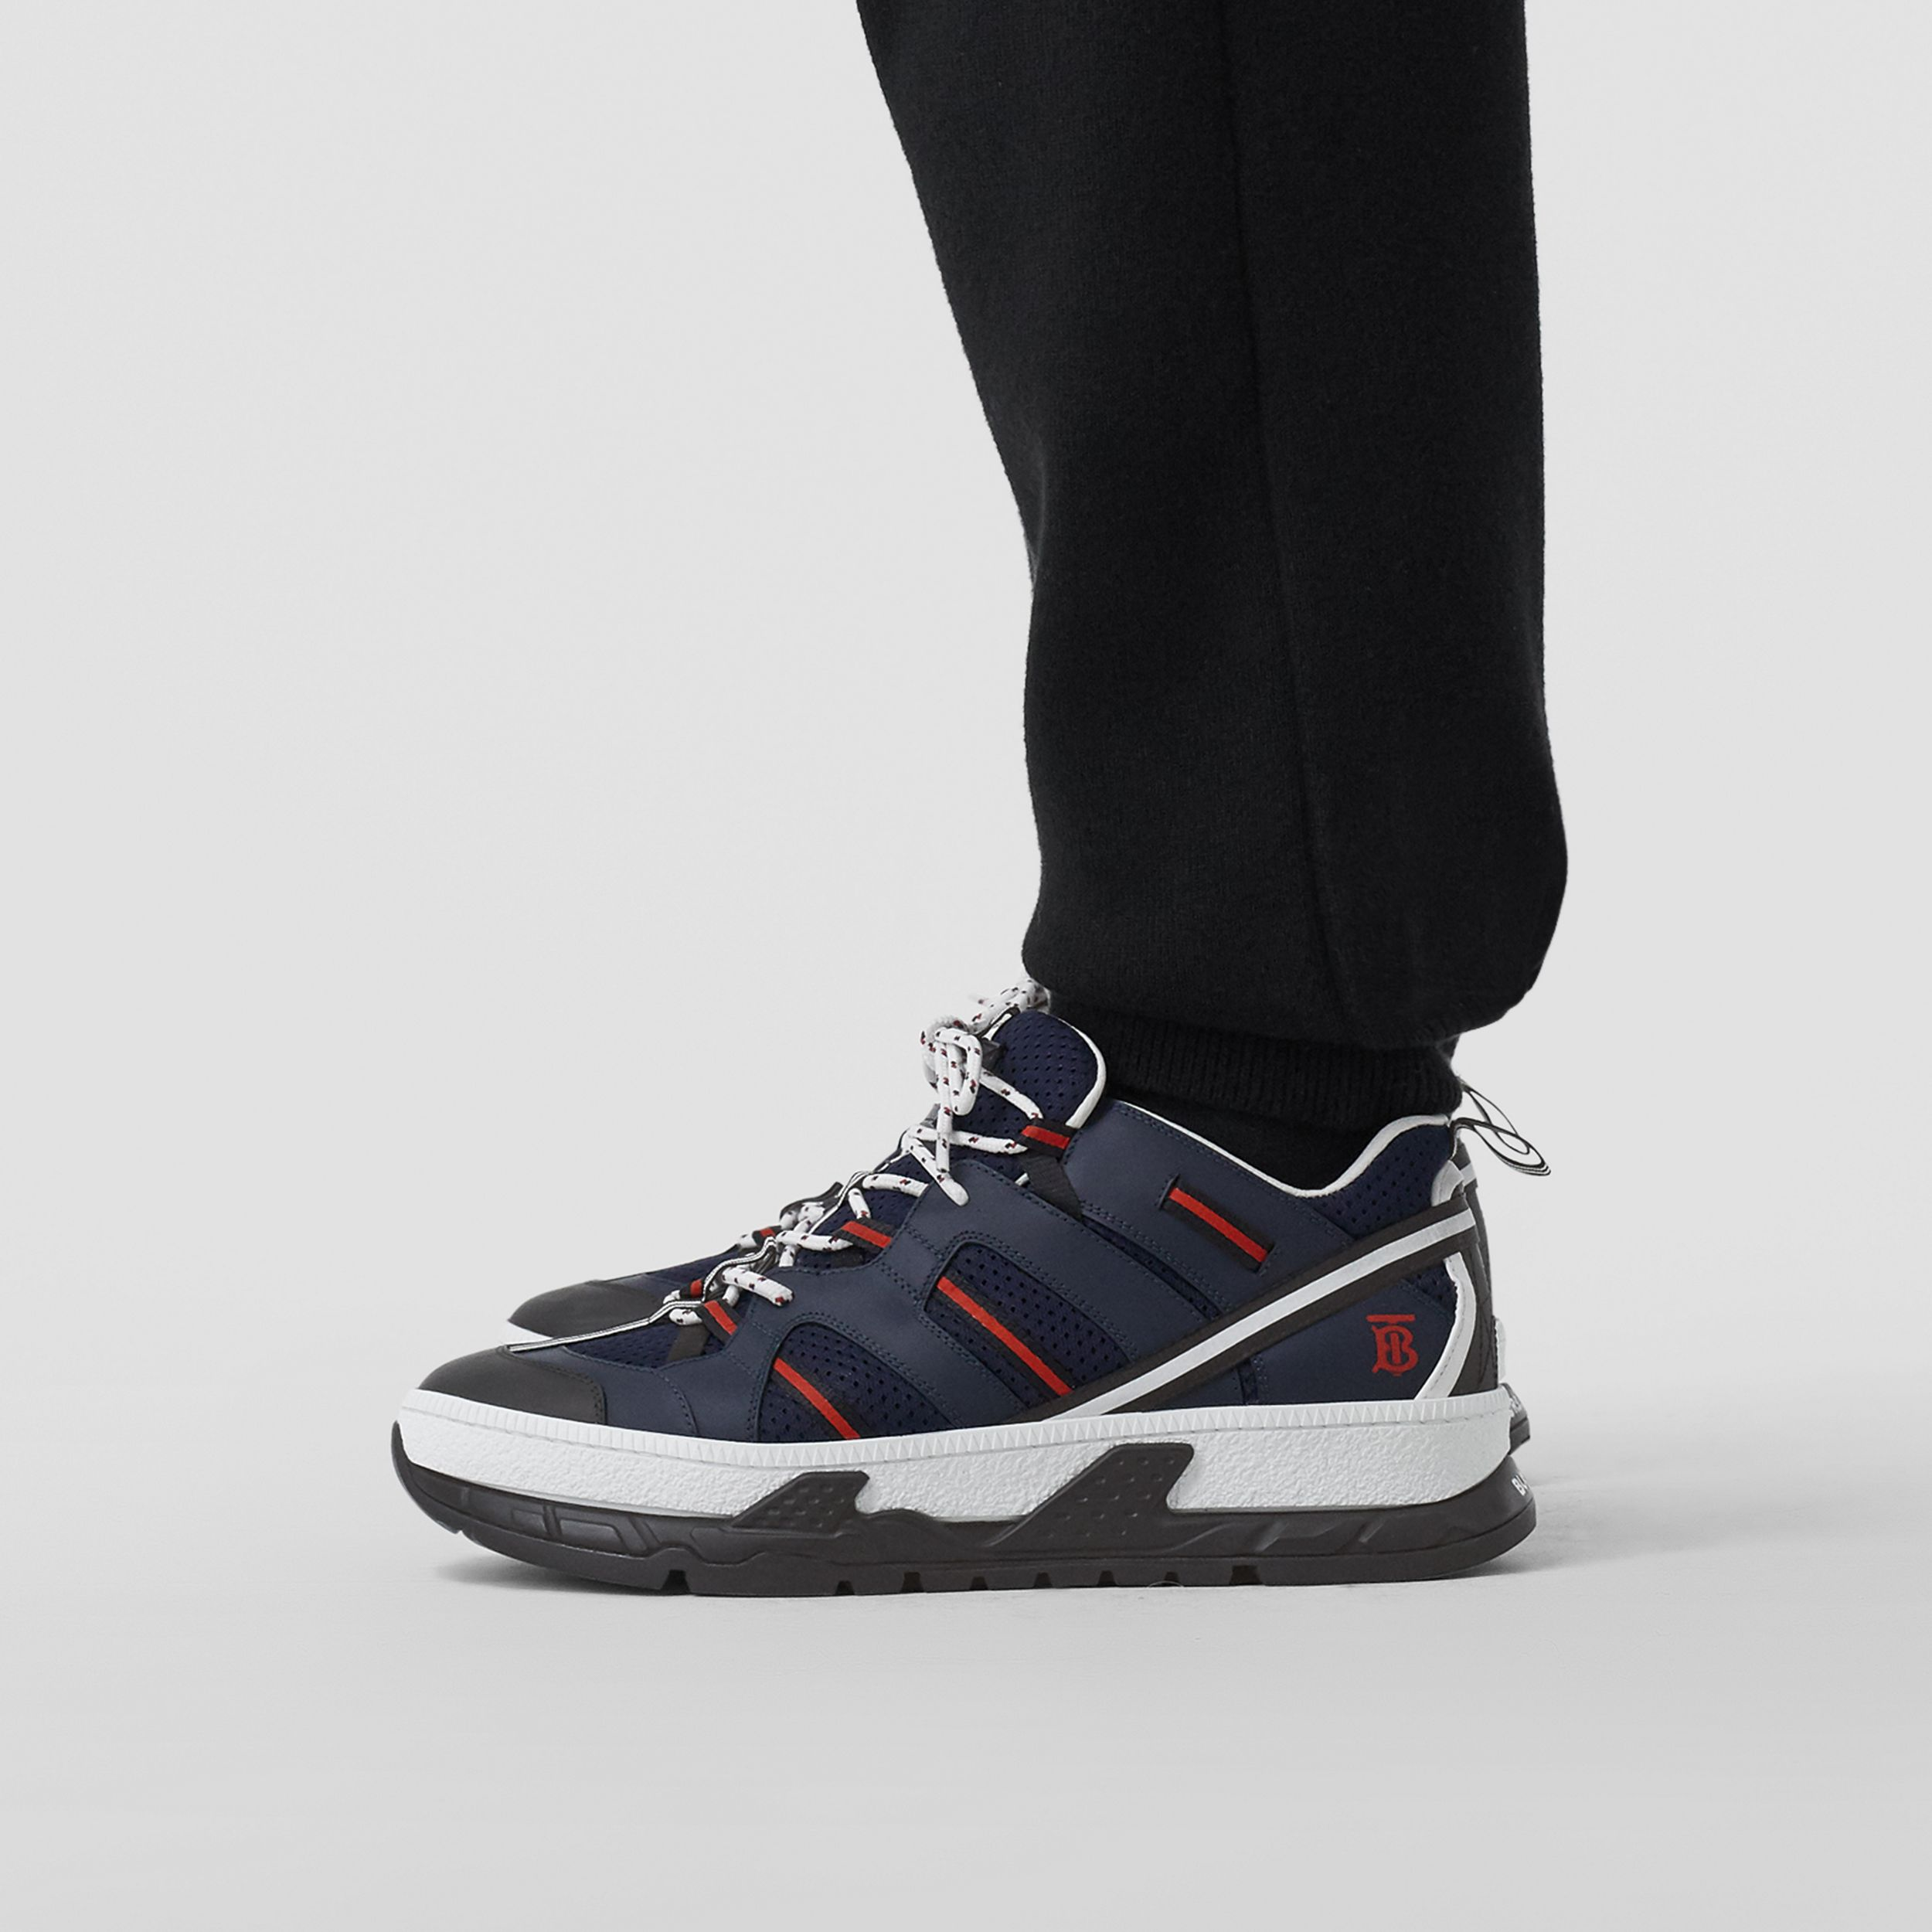 Leather and Mesh Union Sneakers in Navy - Men | Burberry - 3